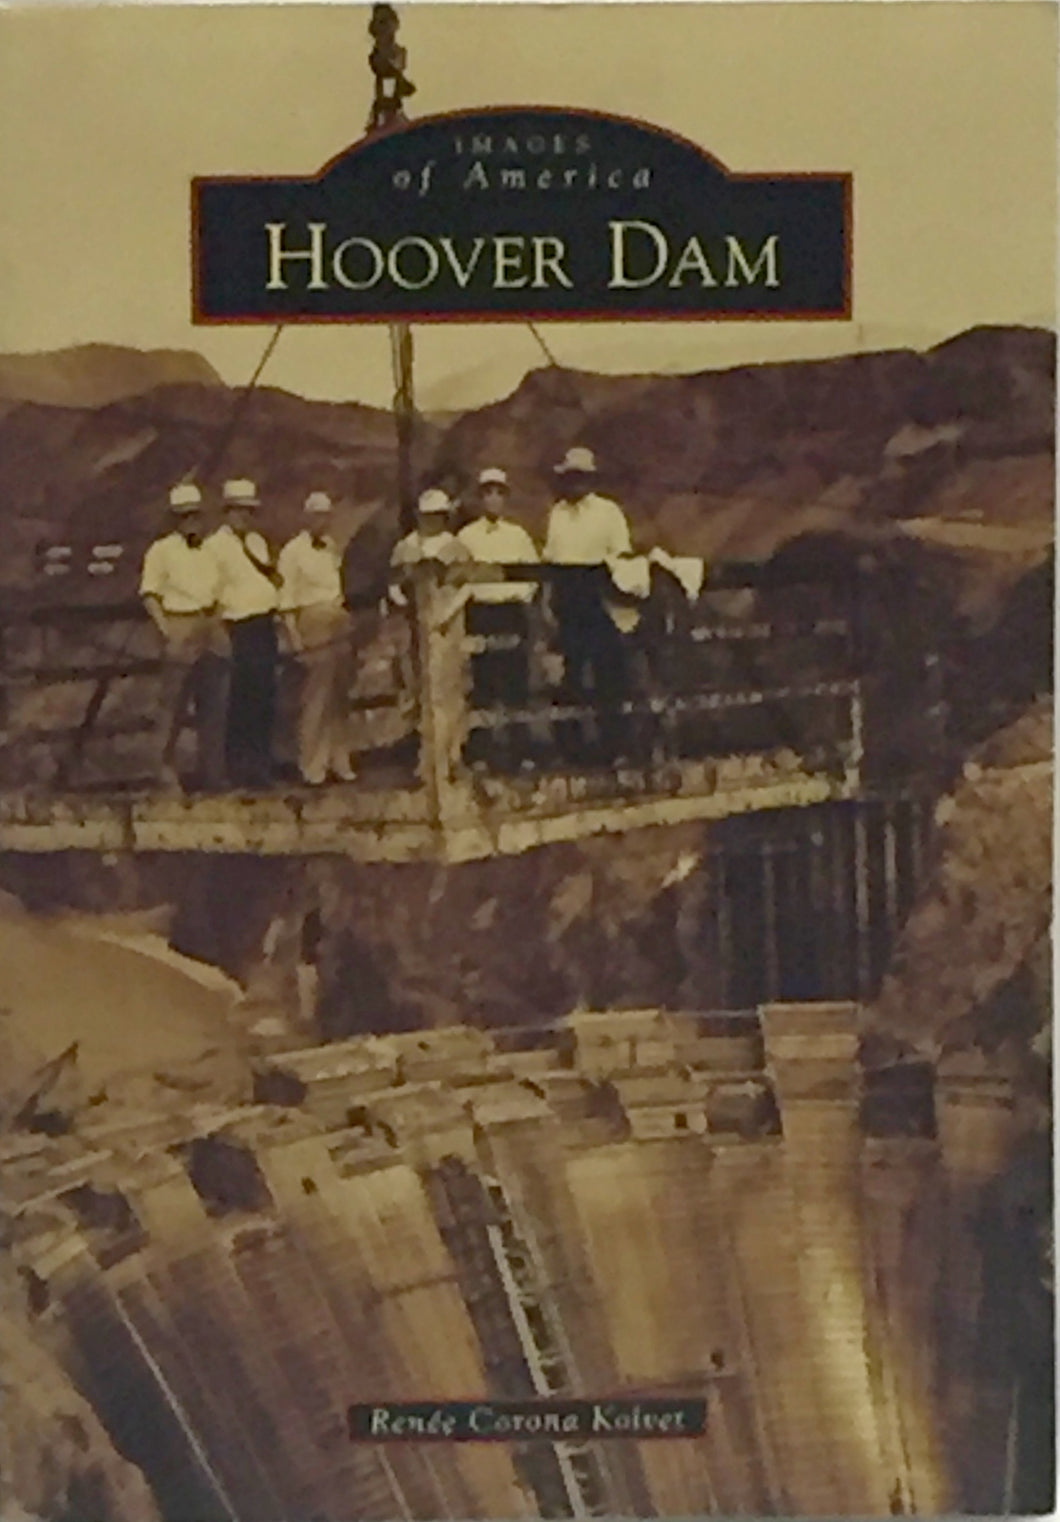 Images of America Hoover Dam